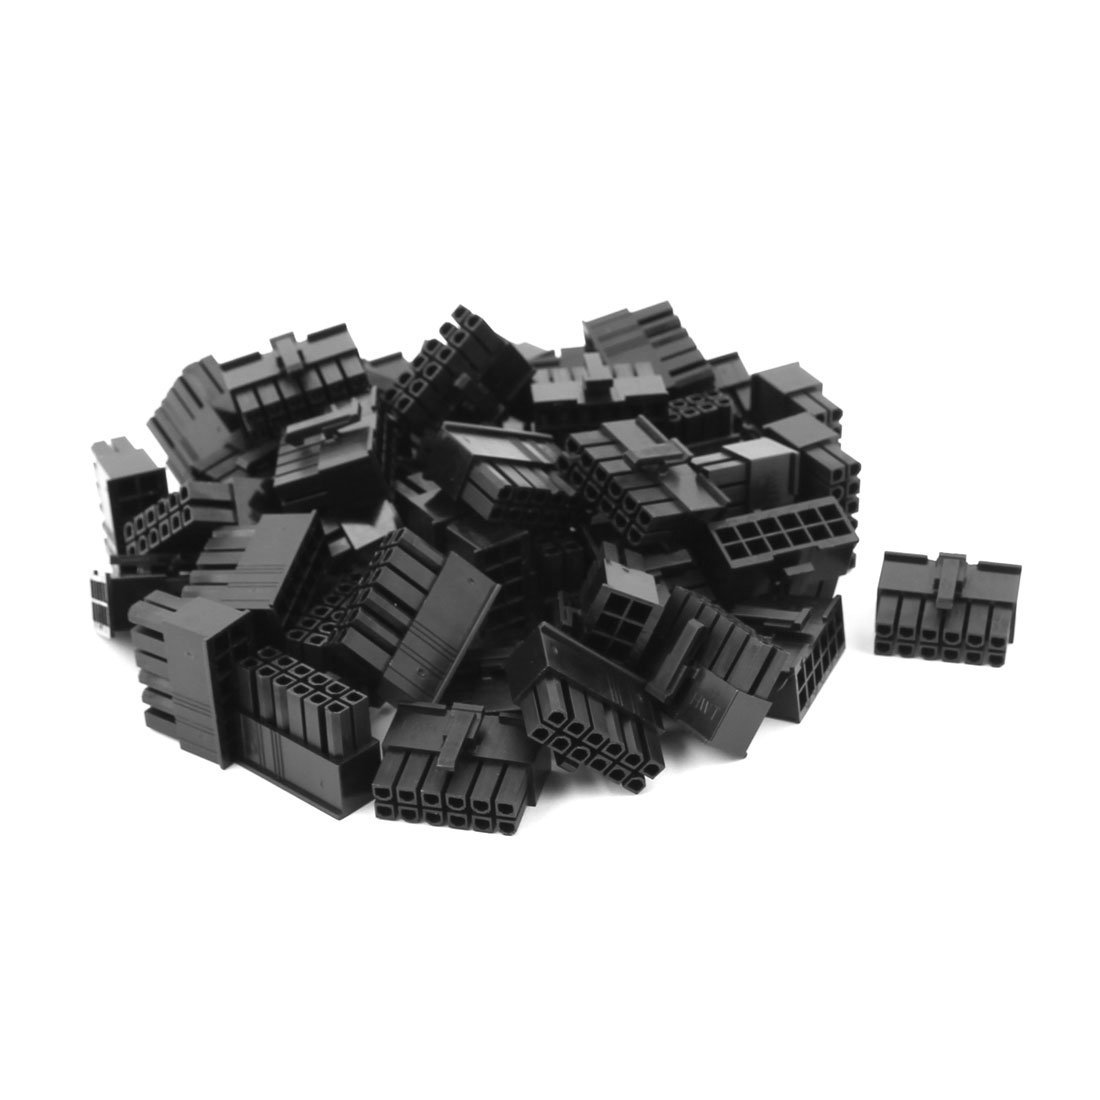 uxcell 50 Sets Double Row Male Housing 5557 4.2mm Pitch 12P Connector Plastic Shell